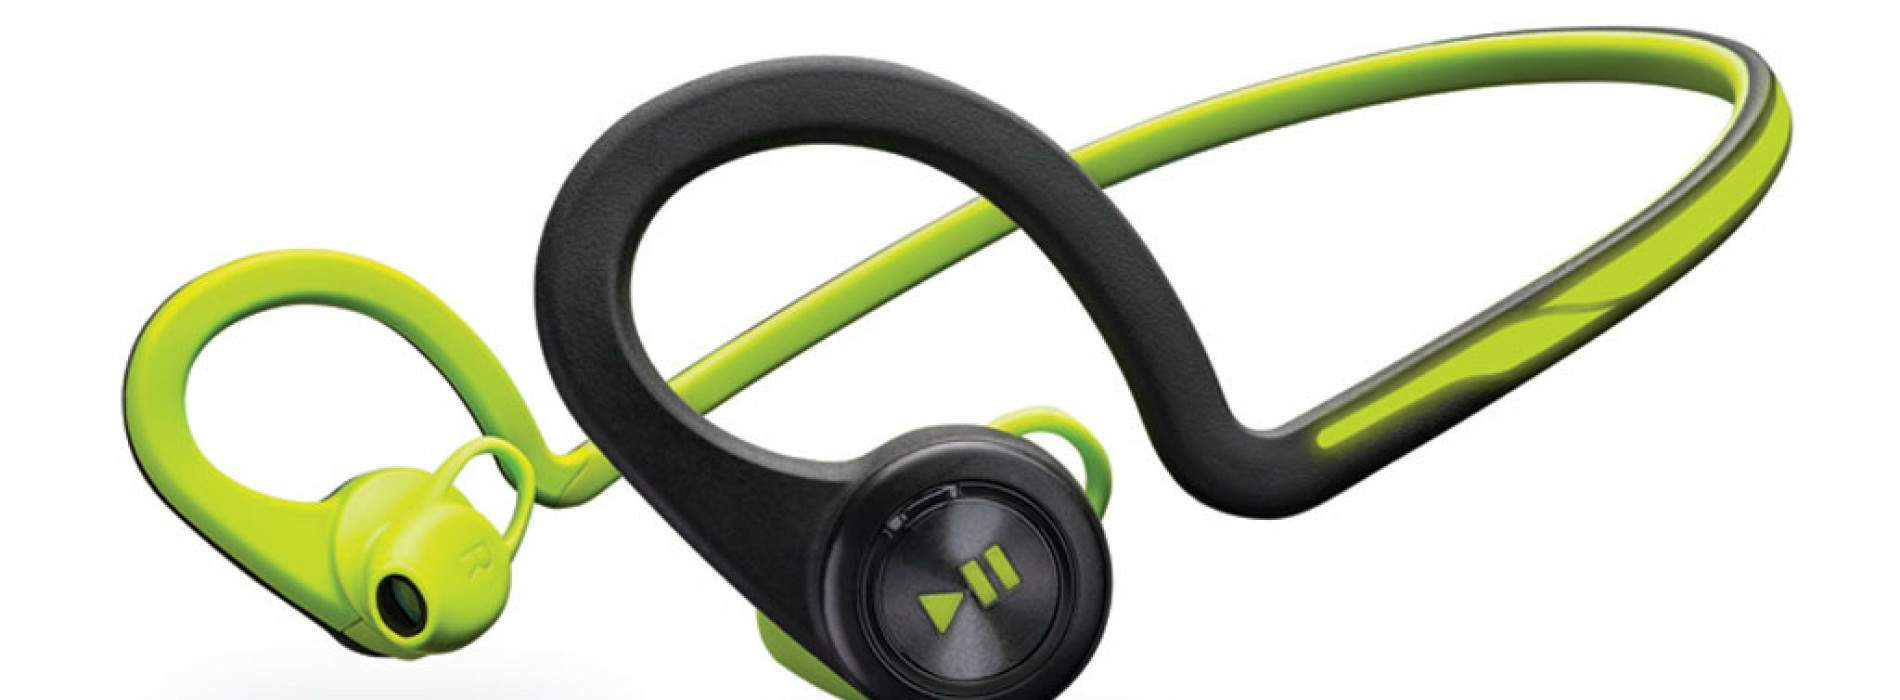 Plantronics BackBeat FIT: A fondo